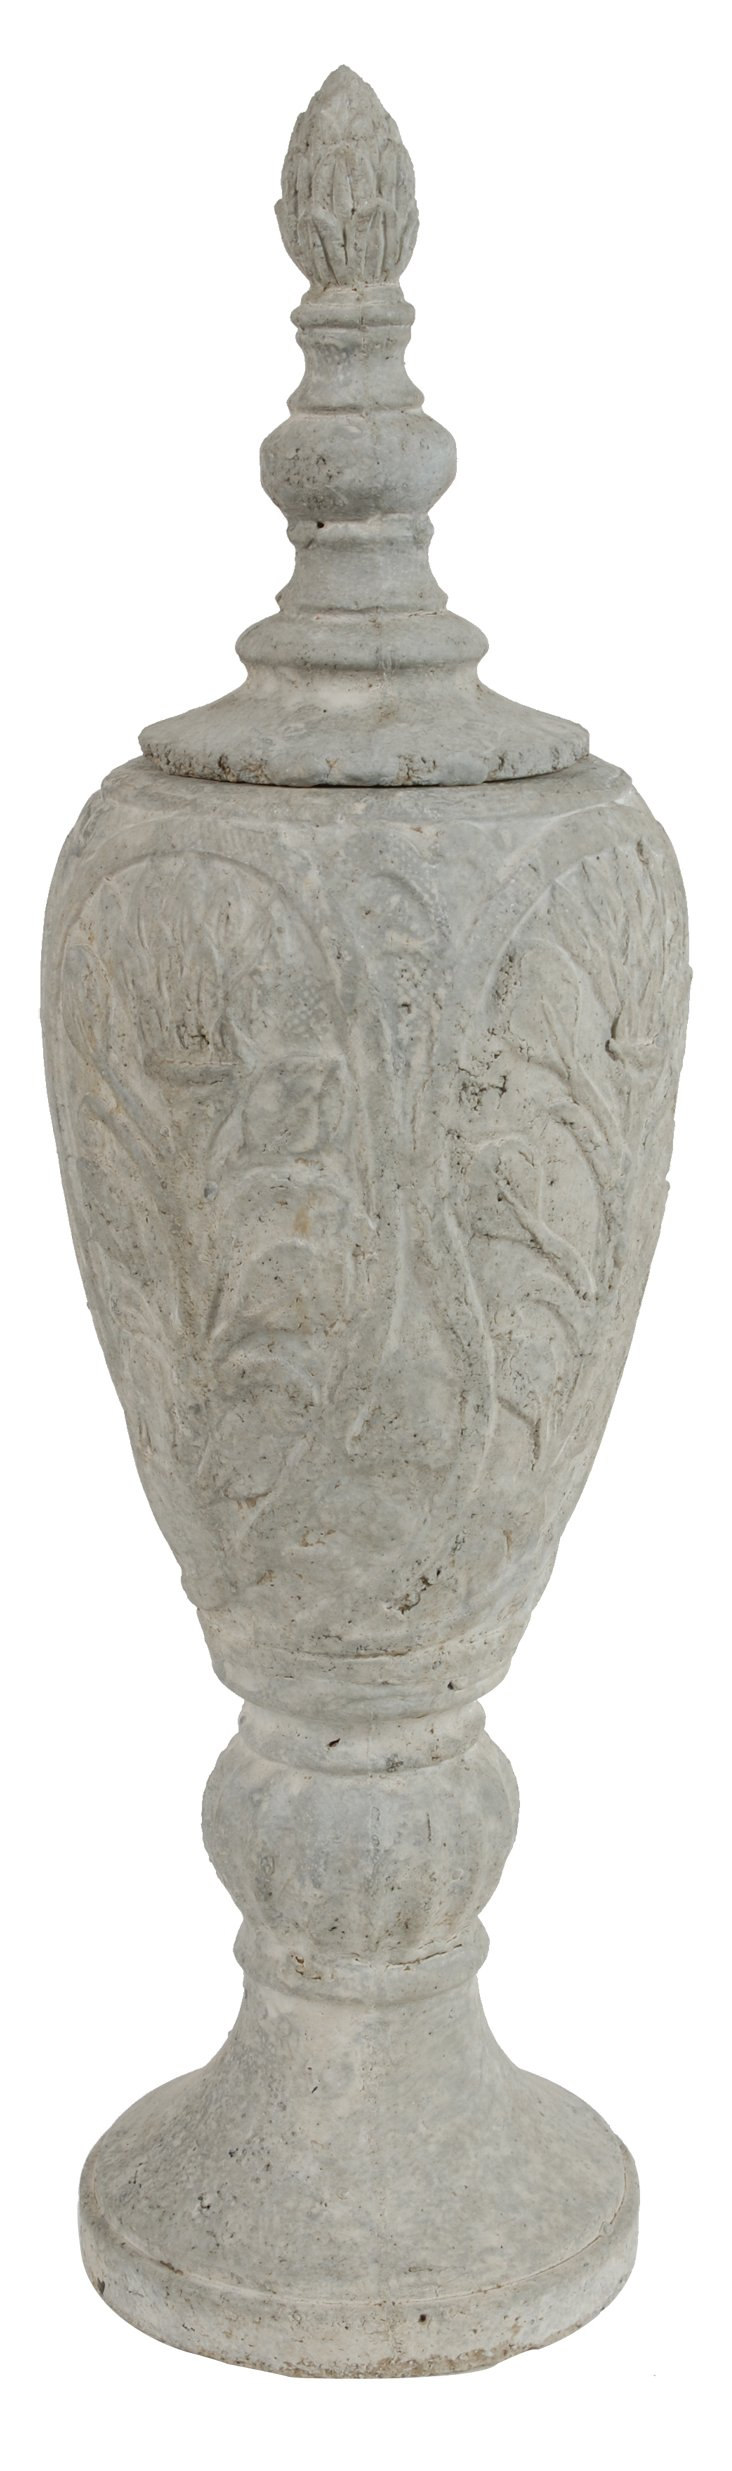 "25"" Decorative Jar"